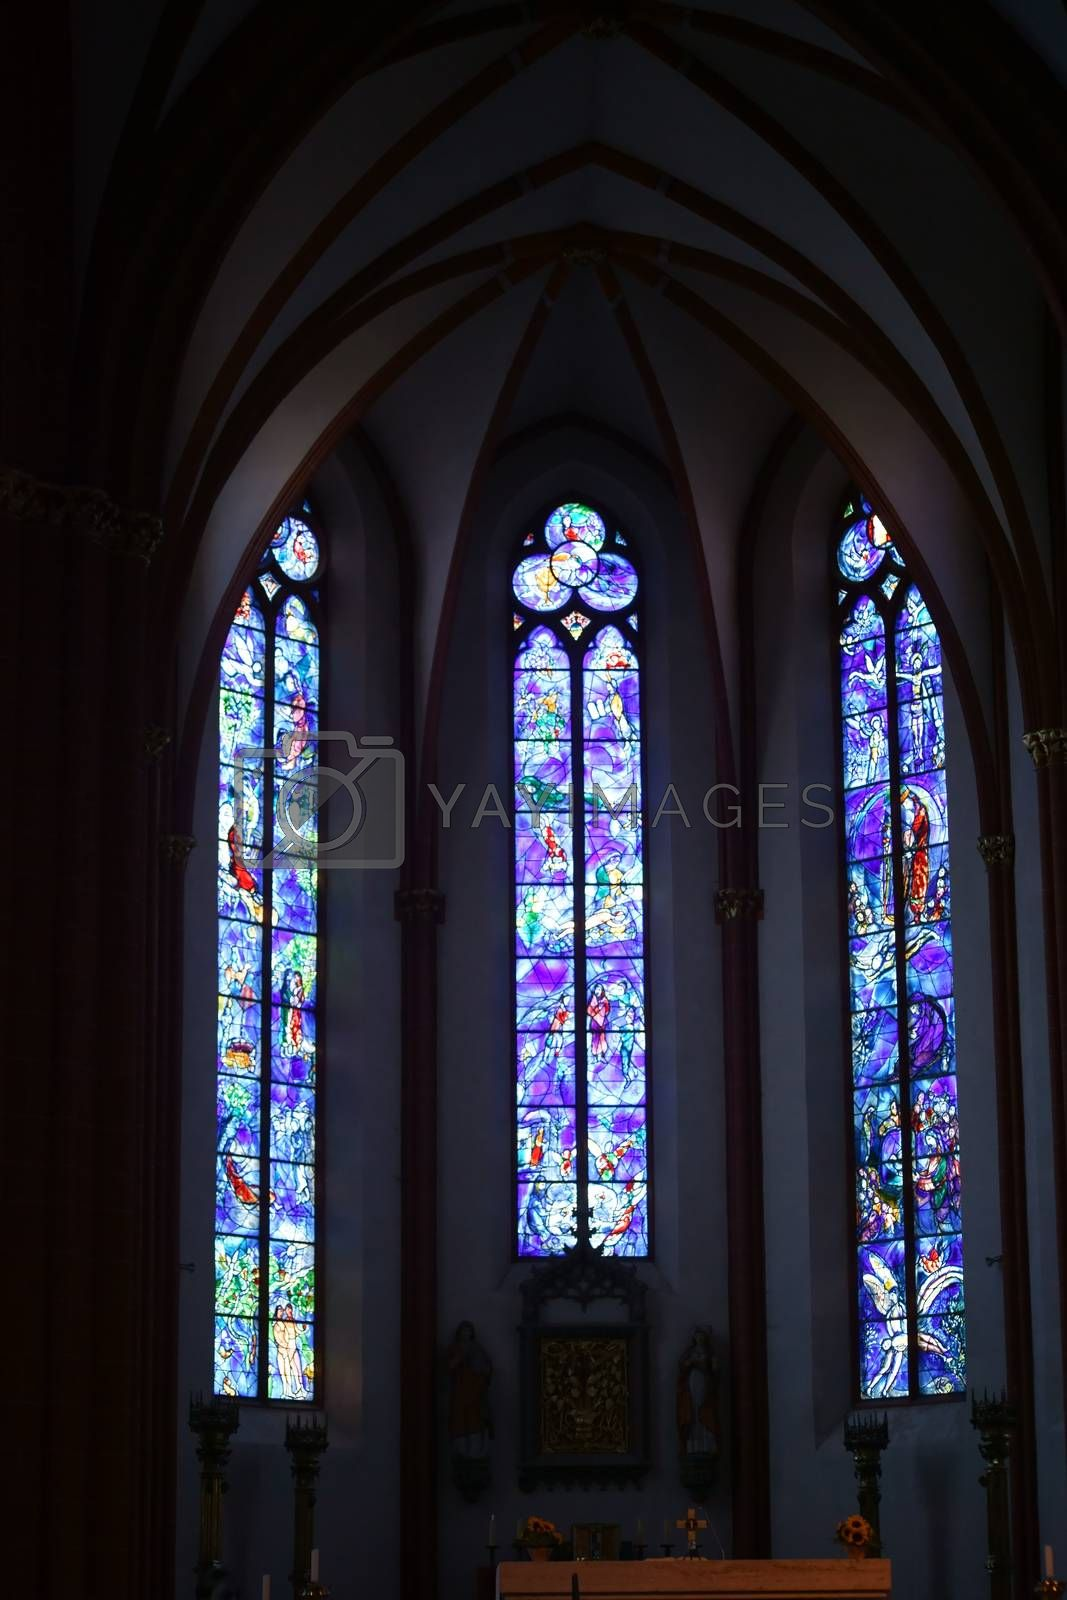 Mainz, Germany - July 10, 2015: The blue painted Chagall windows in the St. Stephen's Church on an altar on July 10, 2015 in Mainz.